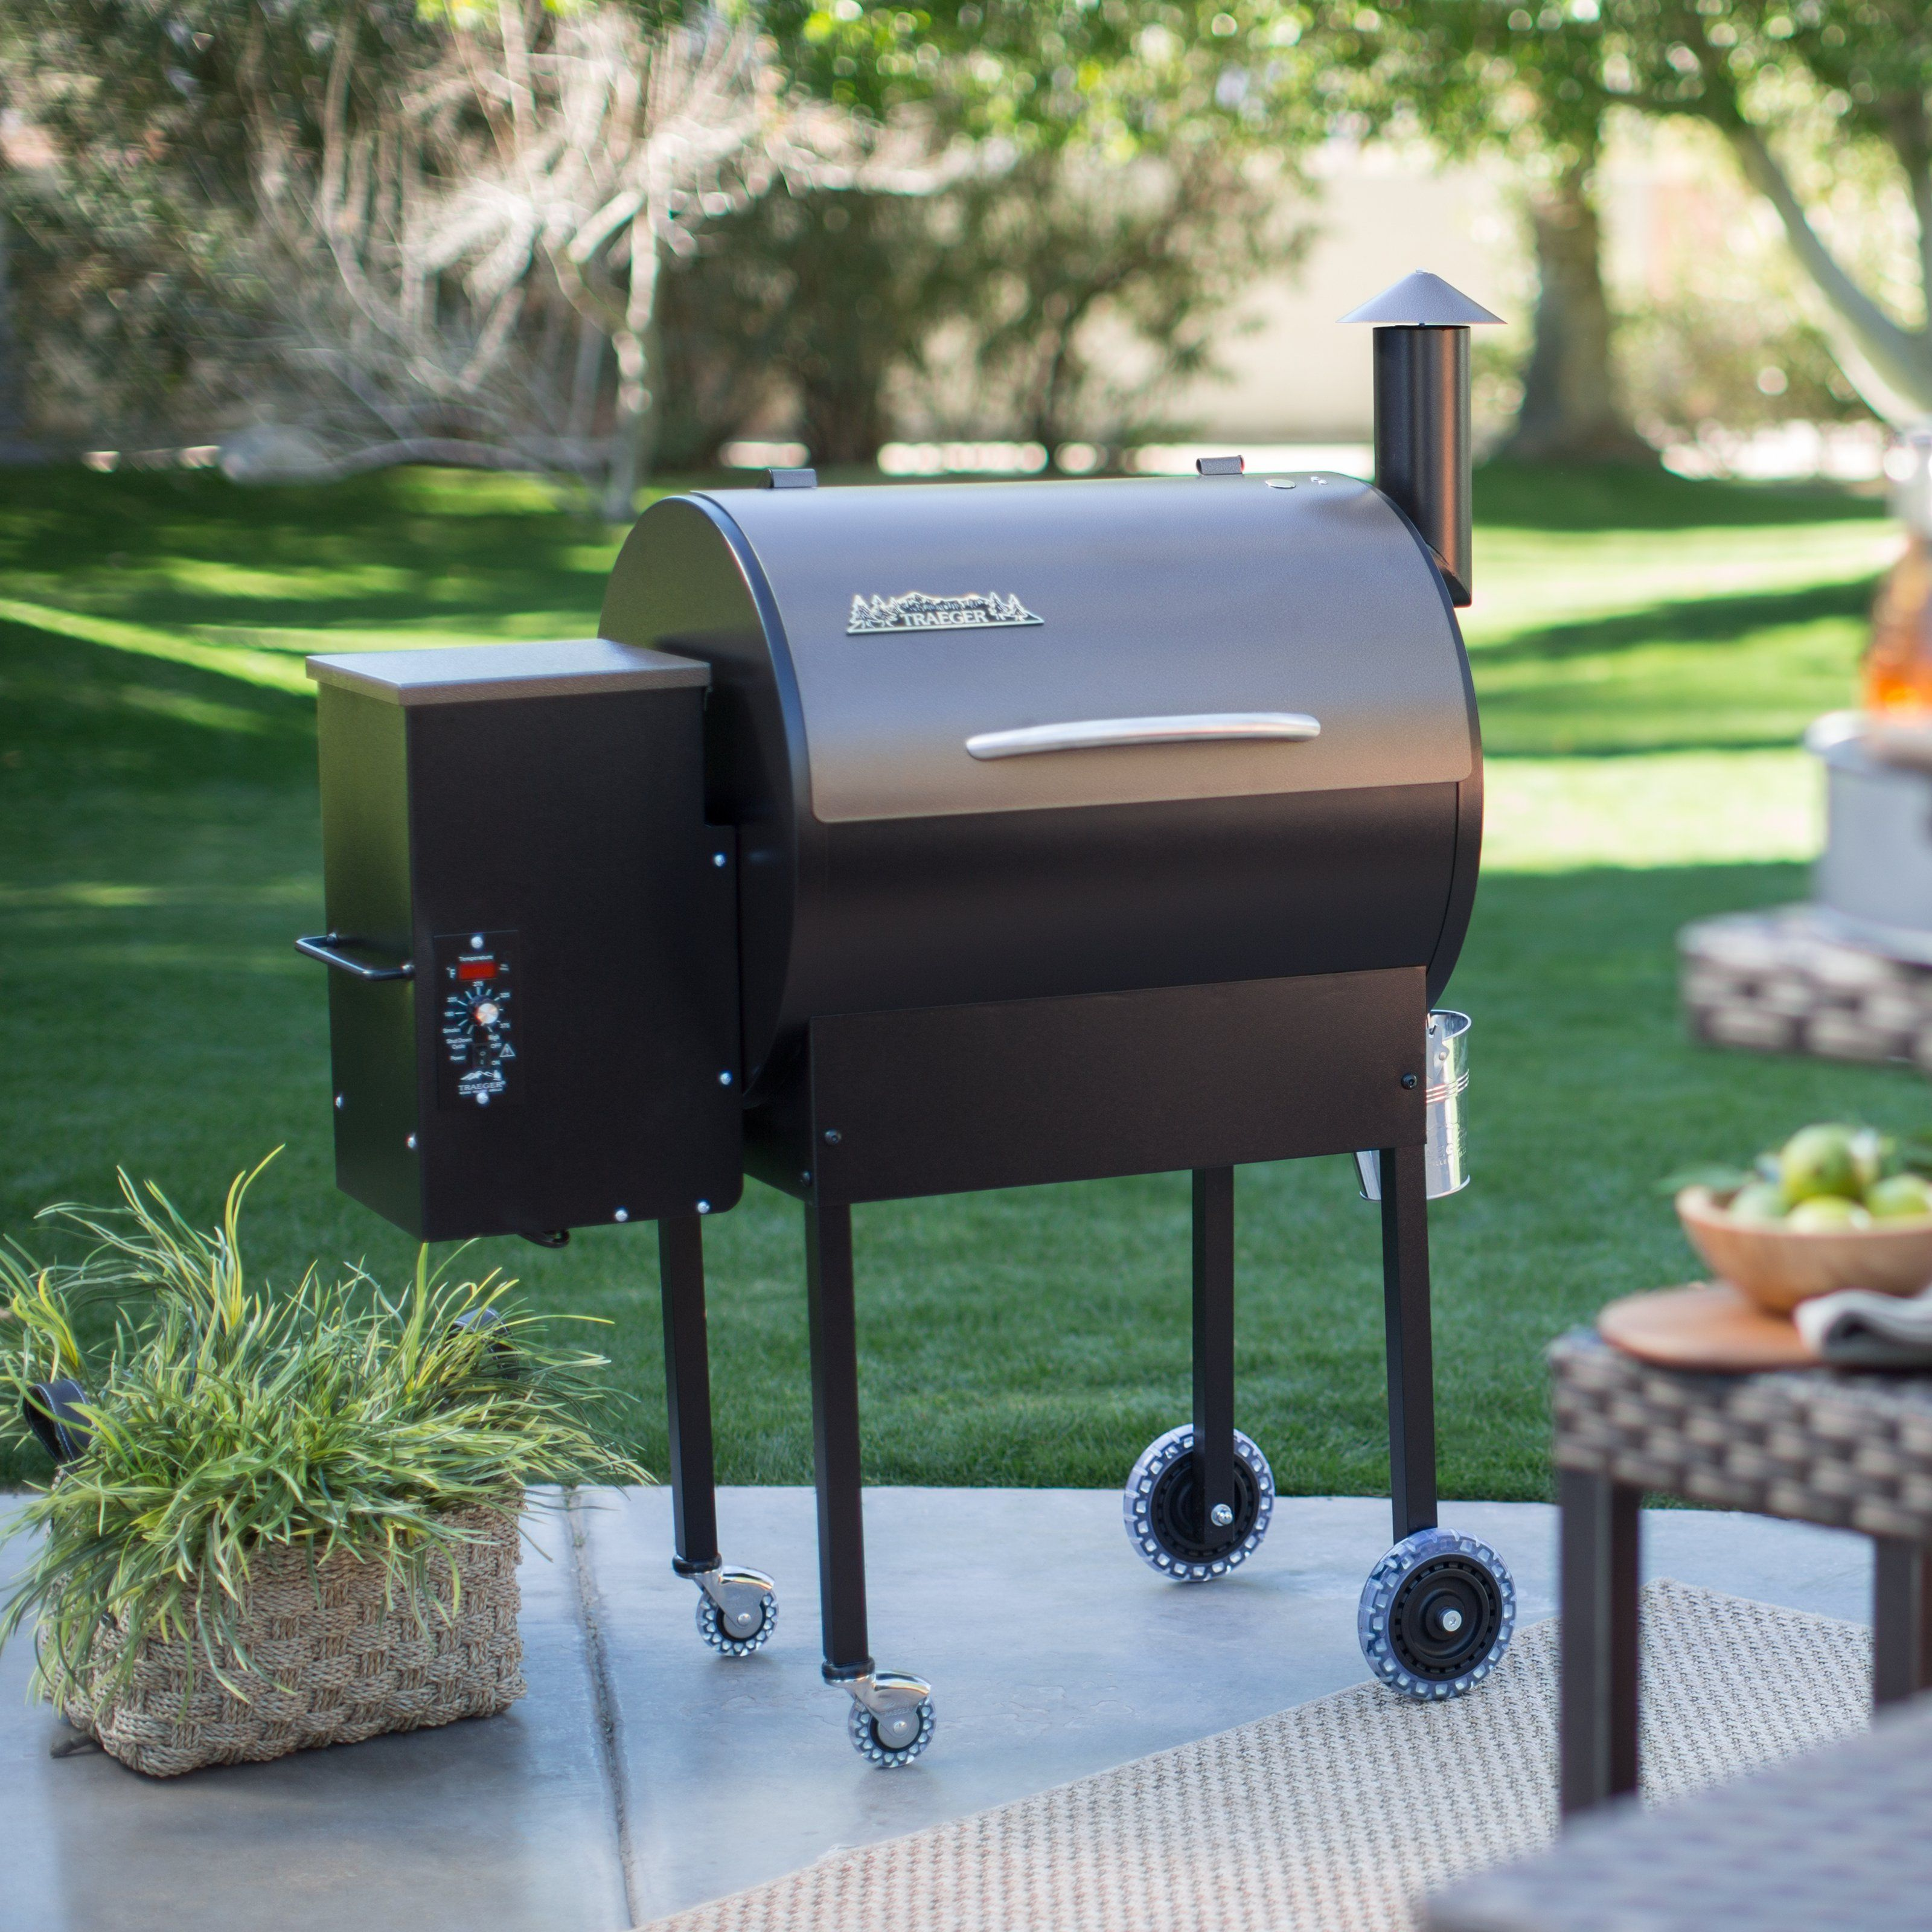 8b216666723cef3542784ab098c74241 the outlaw package offers features the renegade can't beat the 2016 Texas Elite 34 Traeger at crackthecode.co